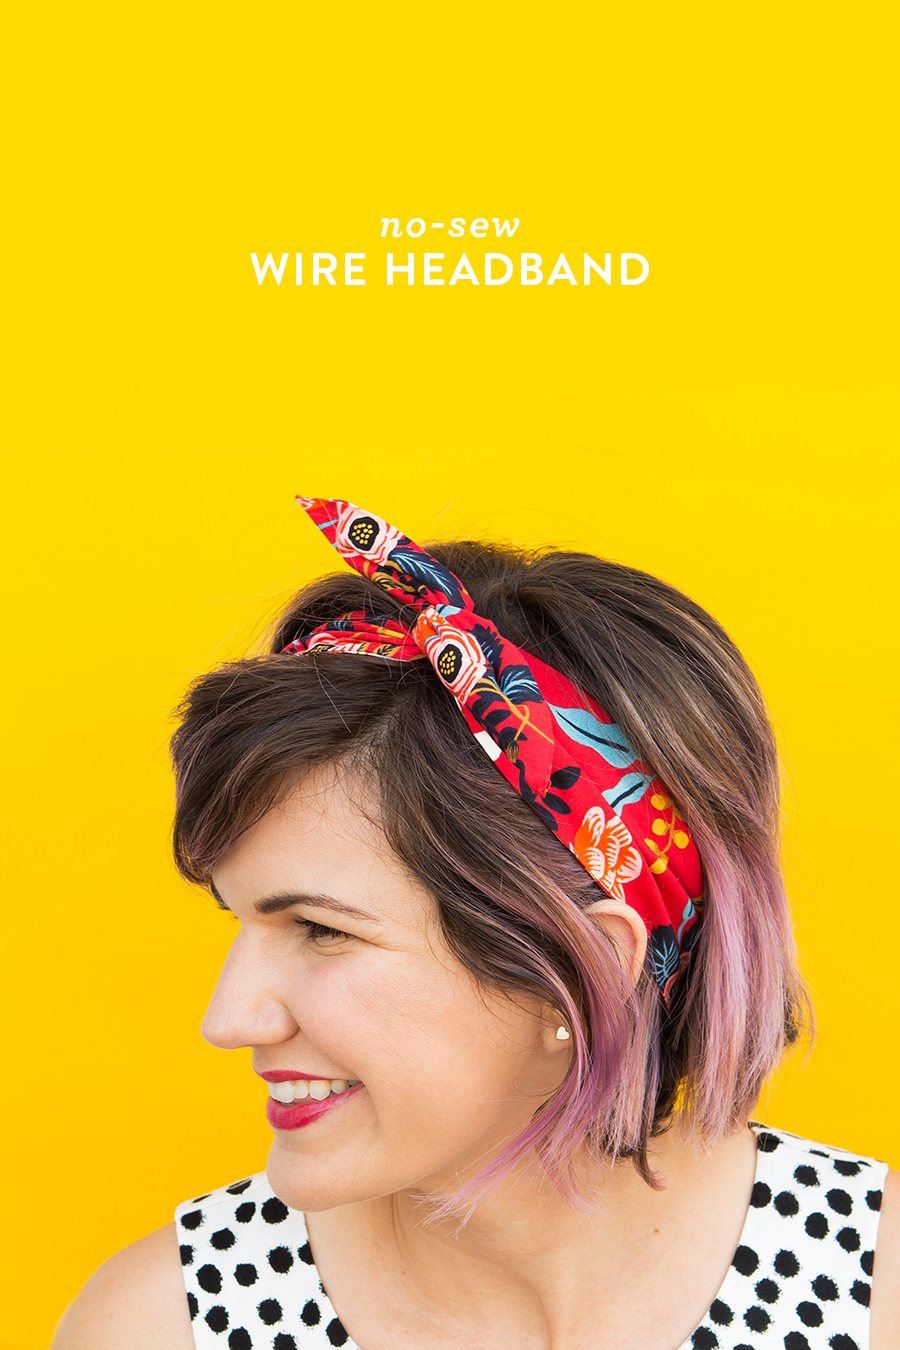 diy no-sew wire headband - sarah hearts